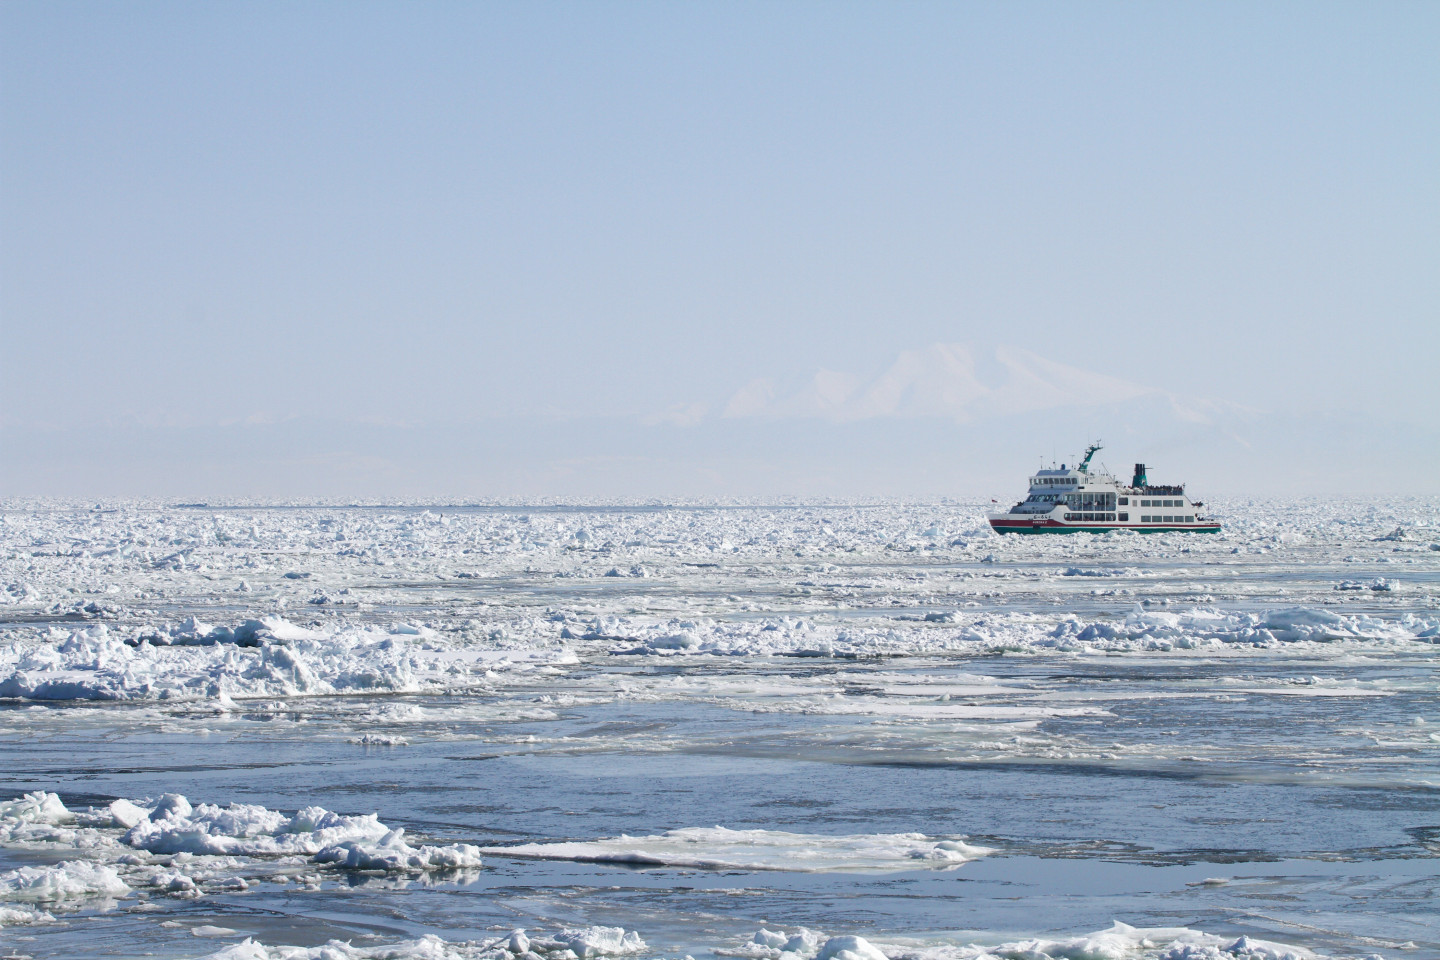 How do you enjoy ice? By taking an ice floe walk from an ice sightseeing boat!